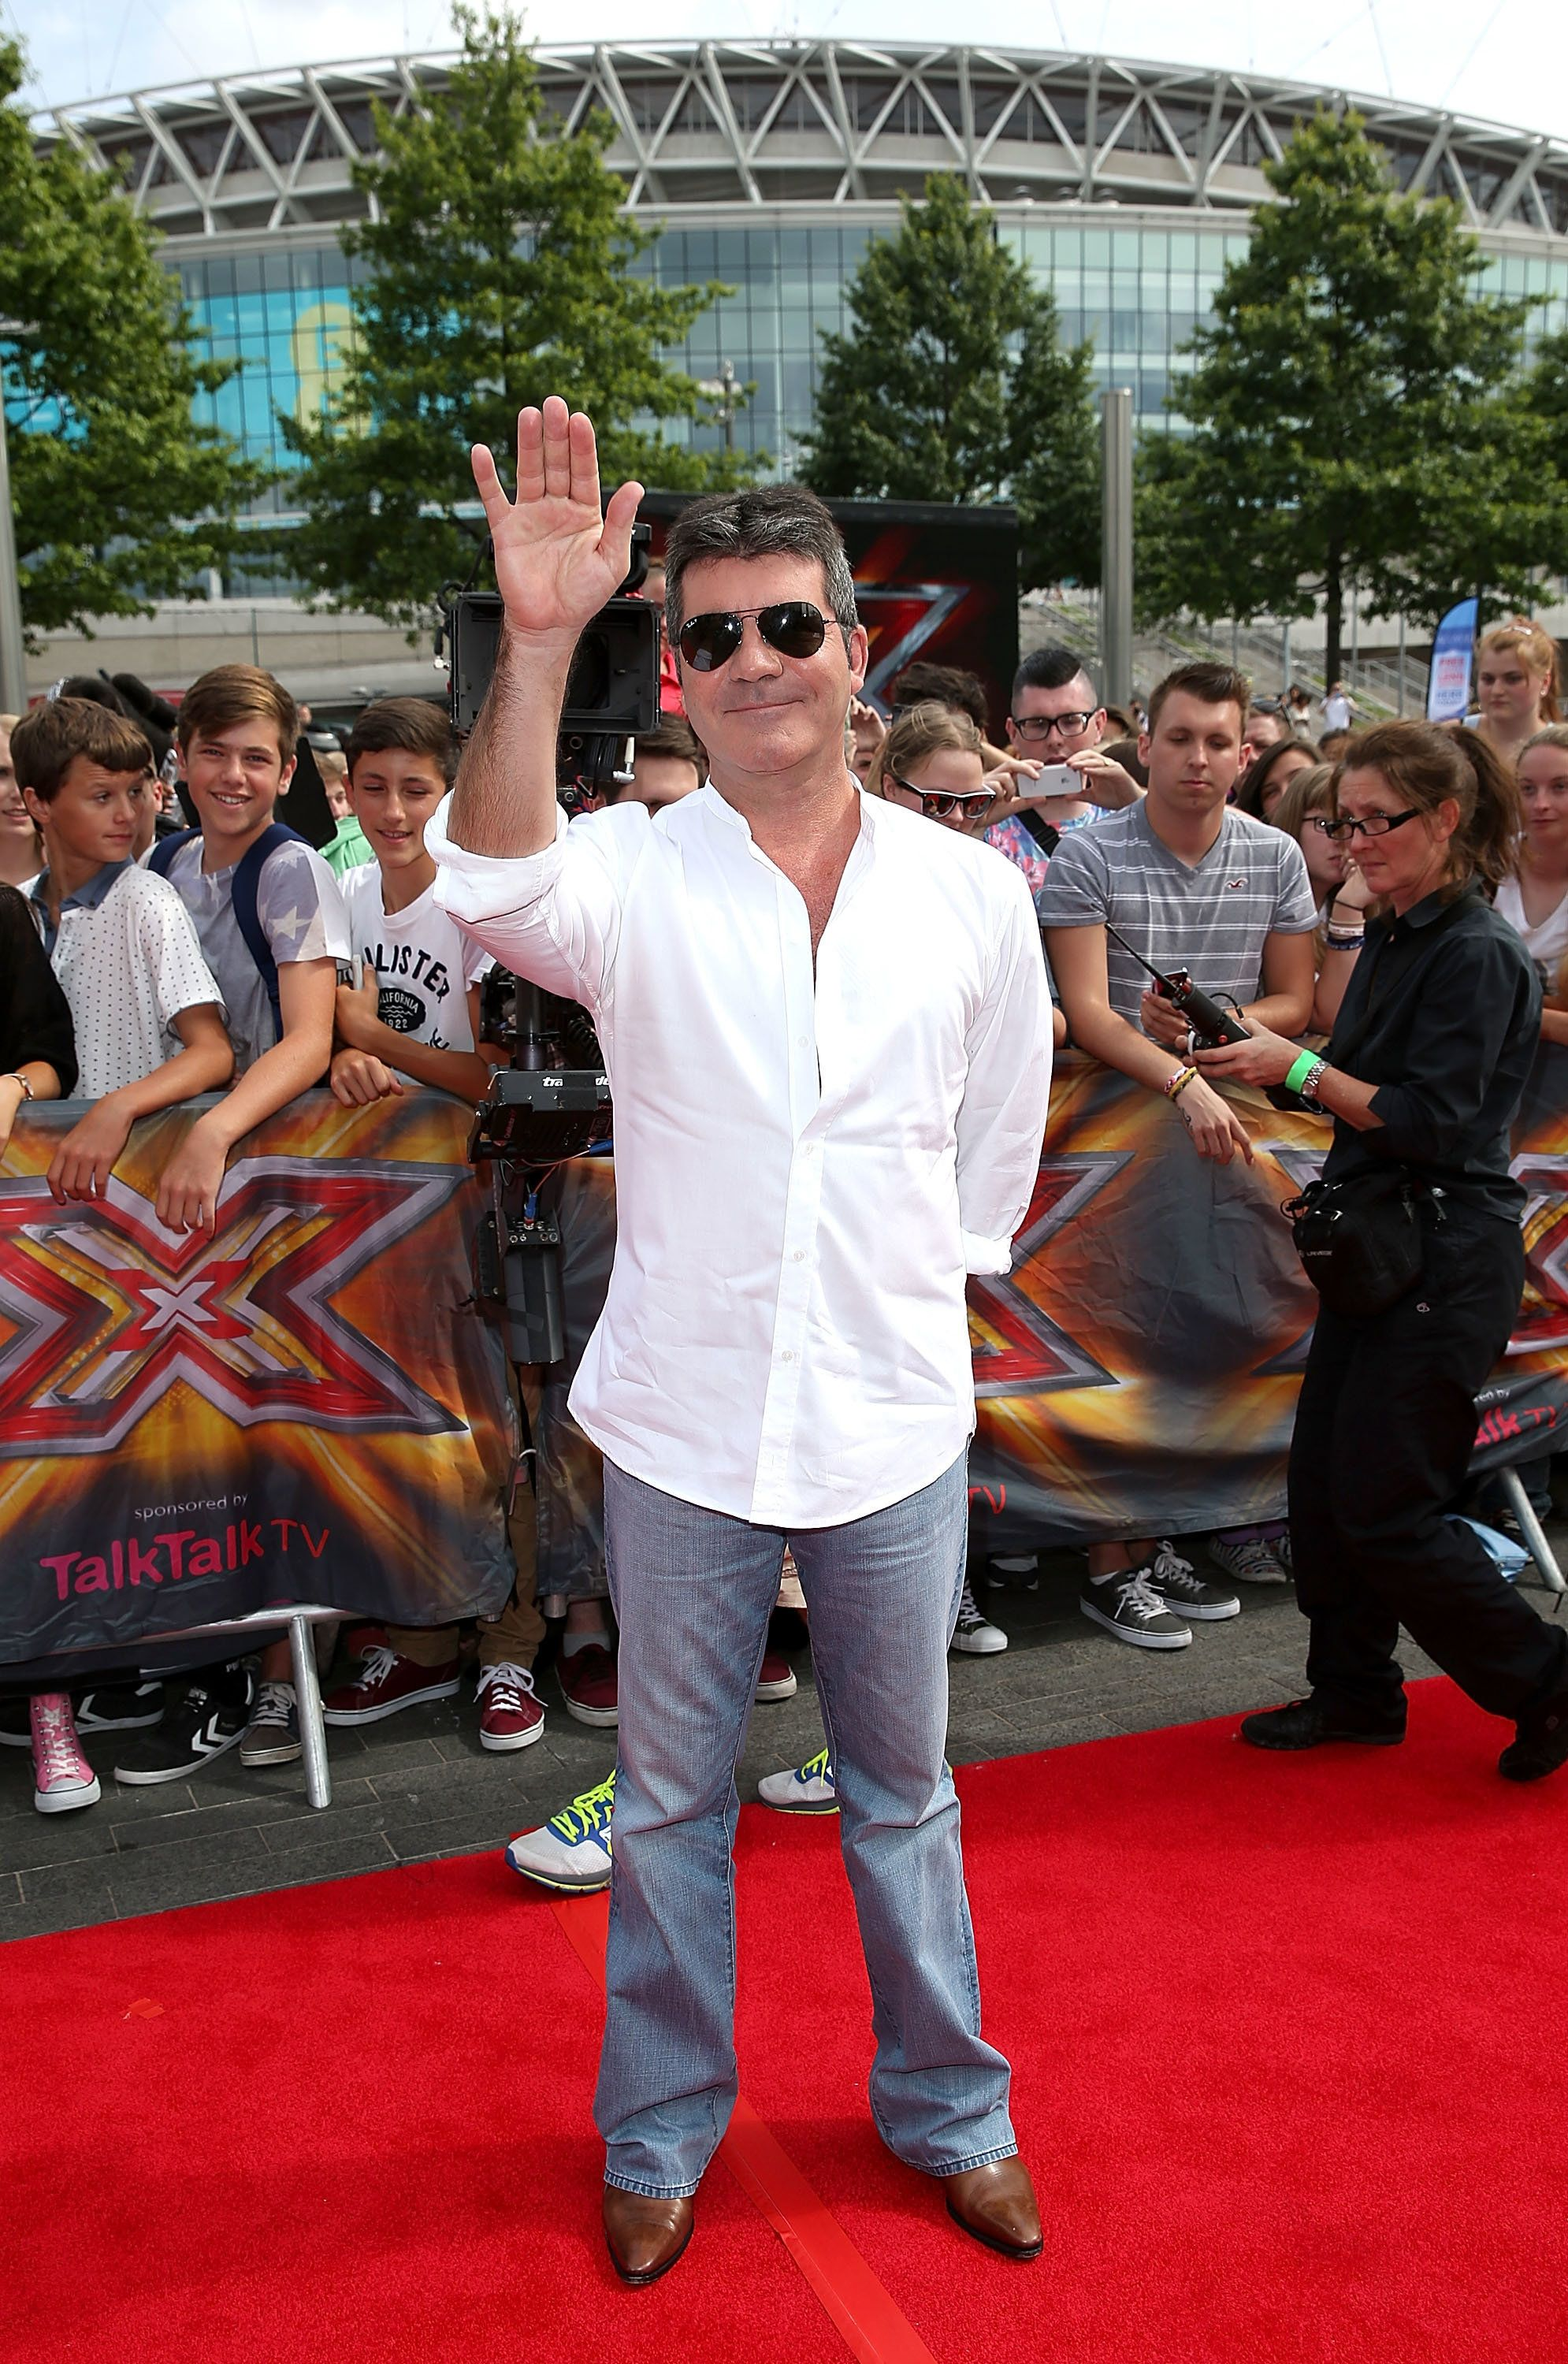 Simon Cowell Misses 'X Factor' Auditions In London Due To